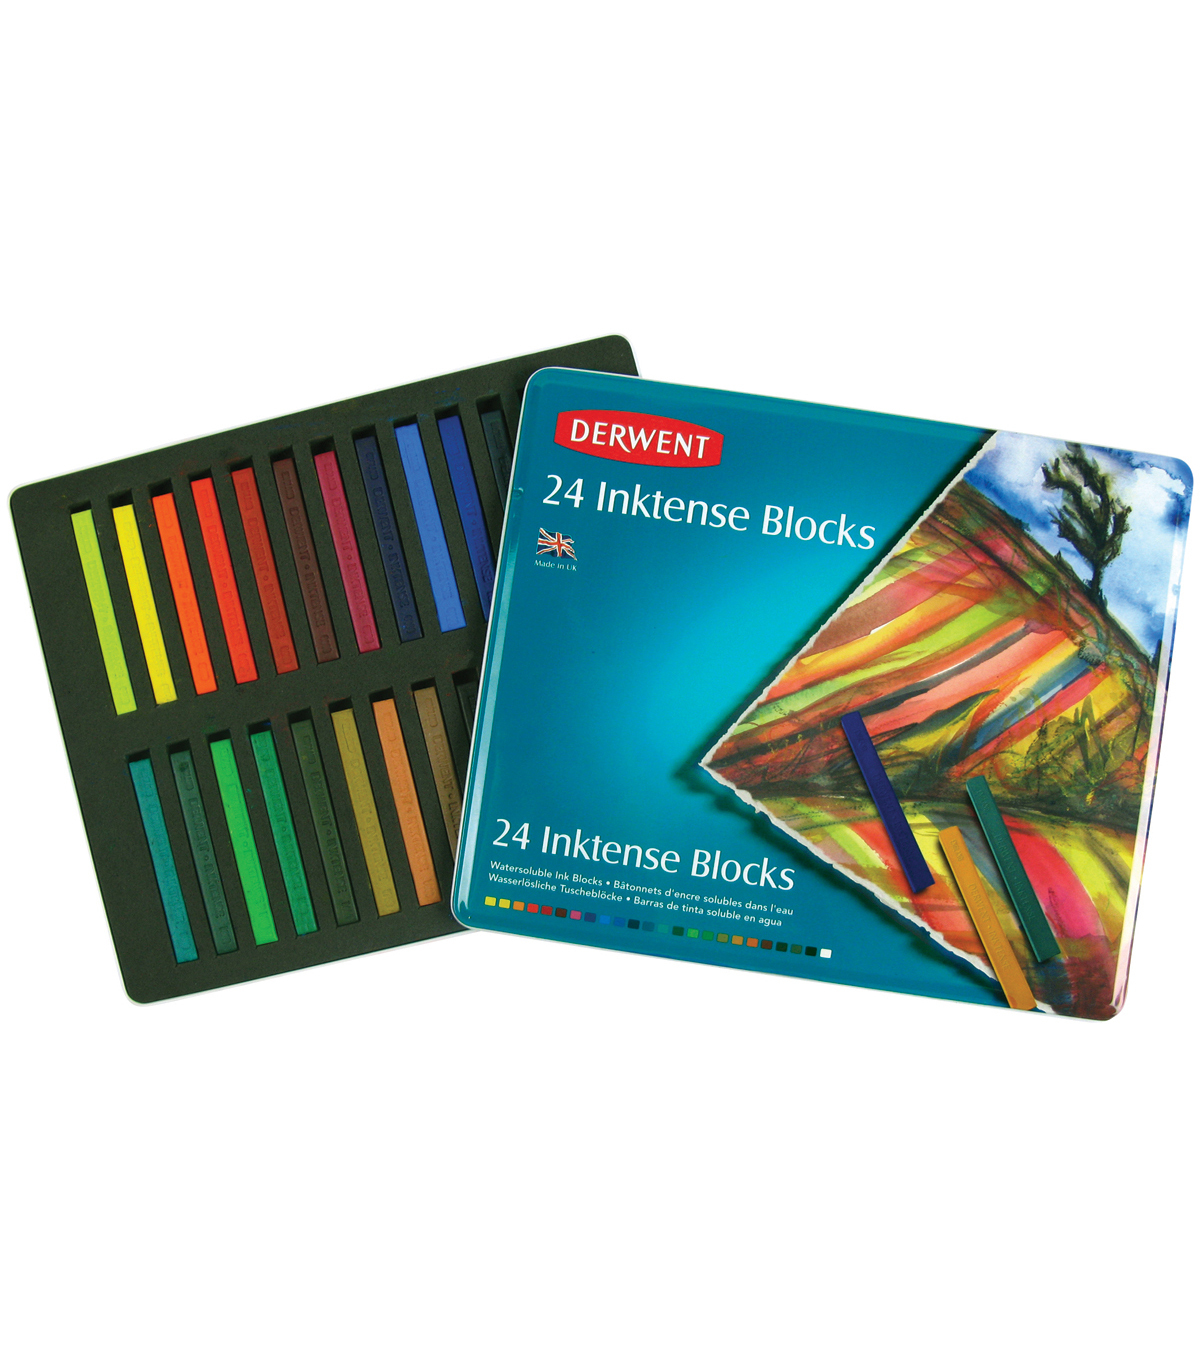 Derwent Inktense Blocks Tin 24/Pkg